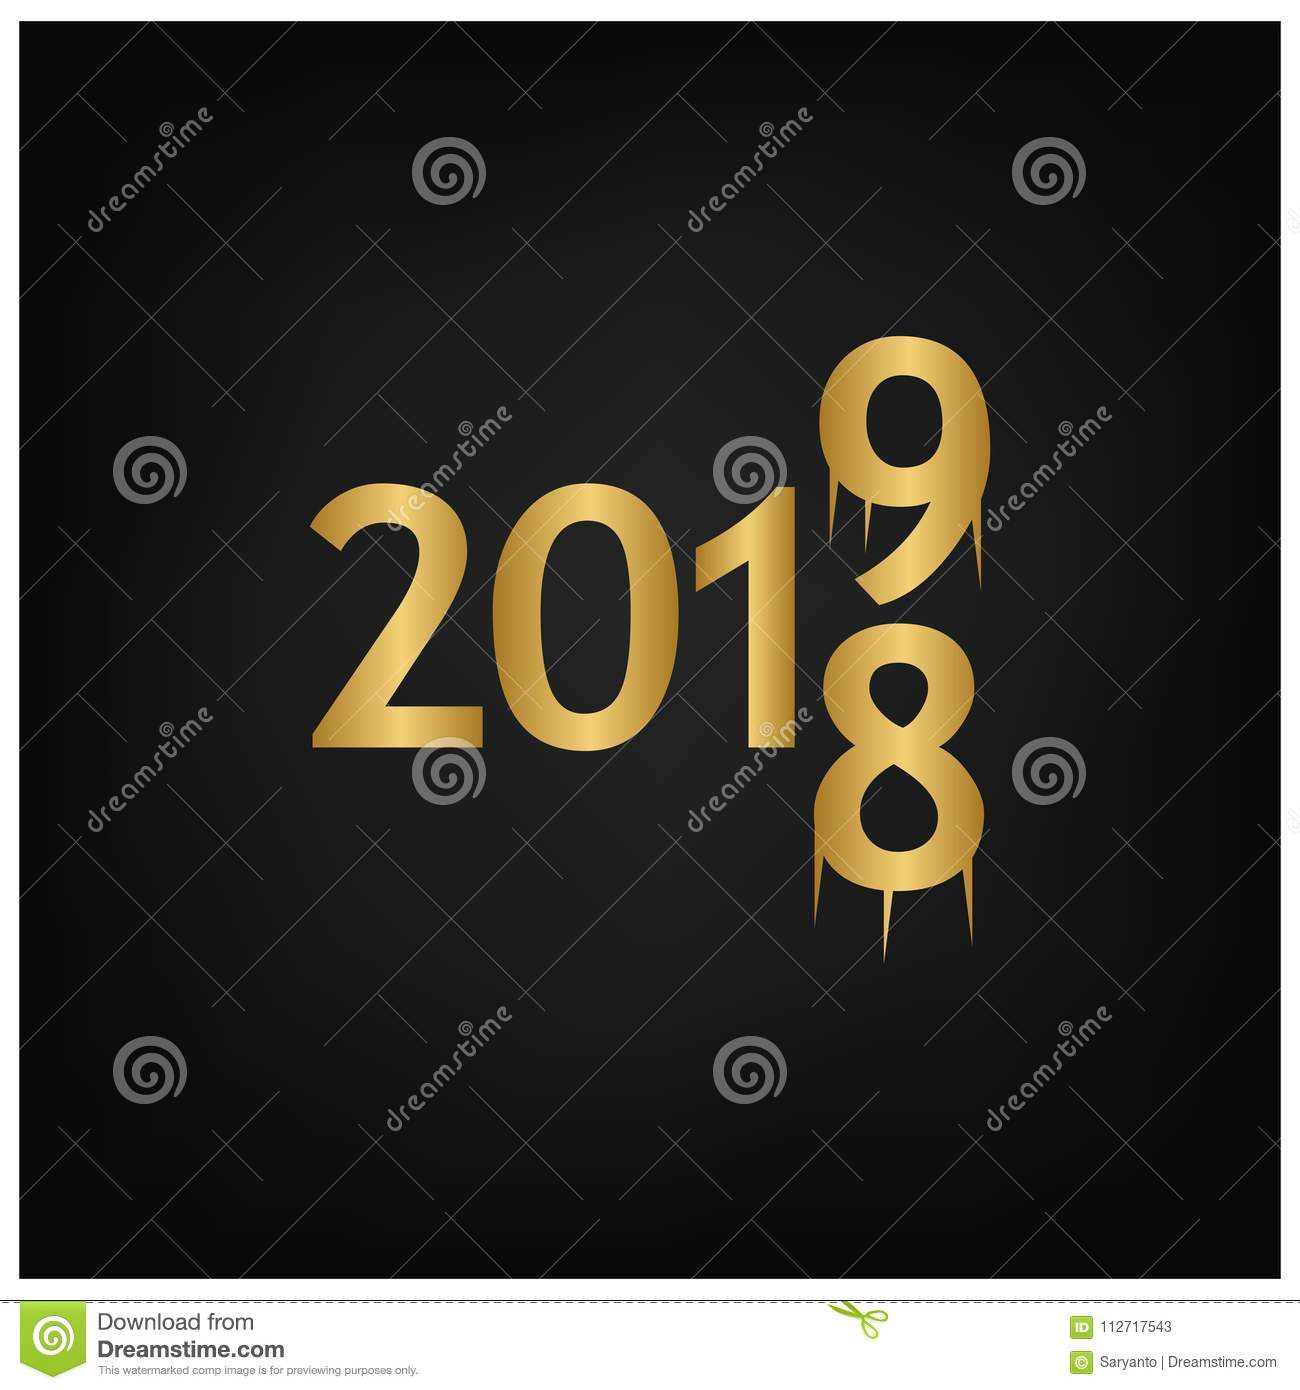 2019 happy new year background for your seasonal flyers banner sticker and greetings